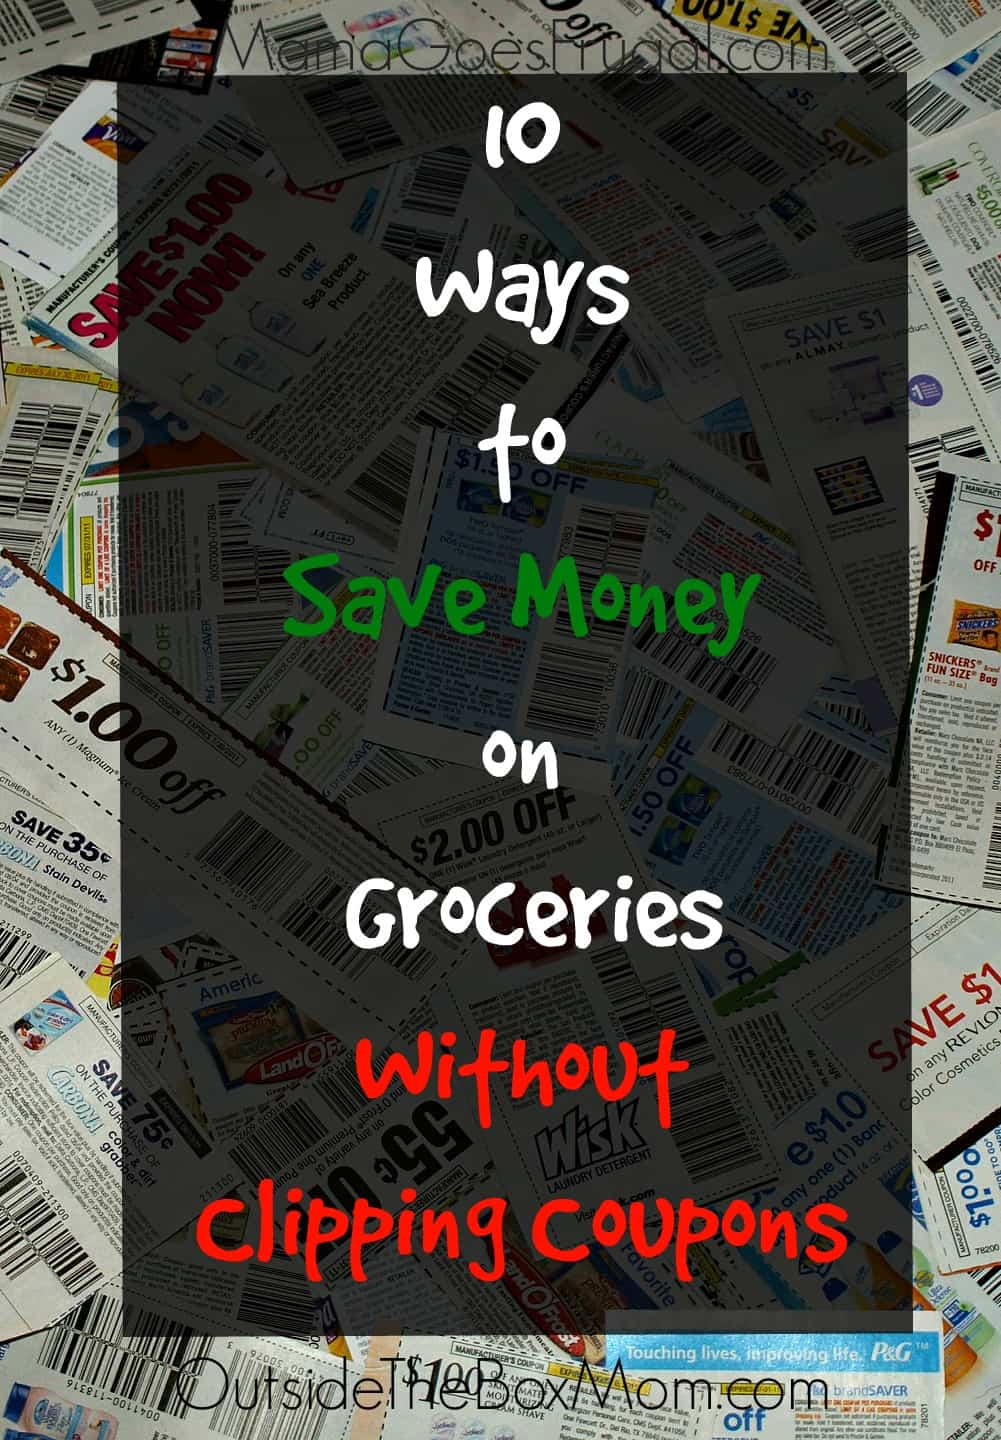 Clipping coupons can be time-consuming, all-encompassing, part-time job. Yes, you can get great savings, but what do those savings cost you? Here are 10 Ways to Save Money on Groceries Without Clipping Coupons. | OutsideTheBoxMom.com